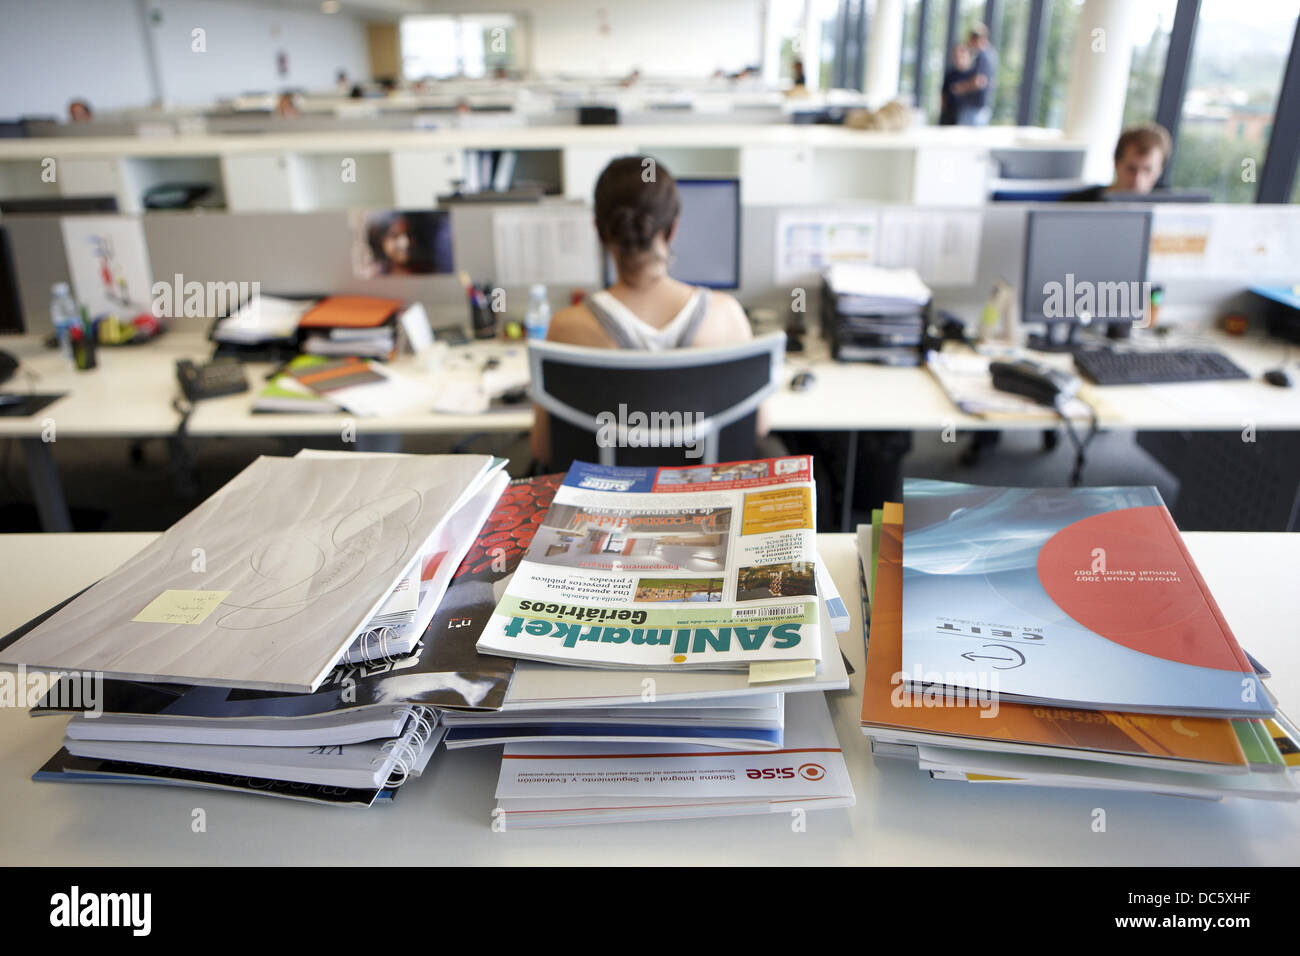 Technical magazines, office, Fatronik-Tecnalia, Research and Technology Center, Donostia, Basque Country, Spain - Stock Image